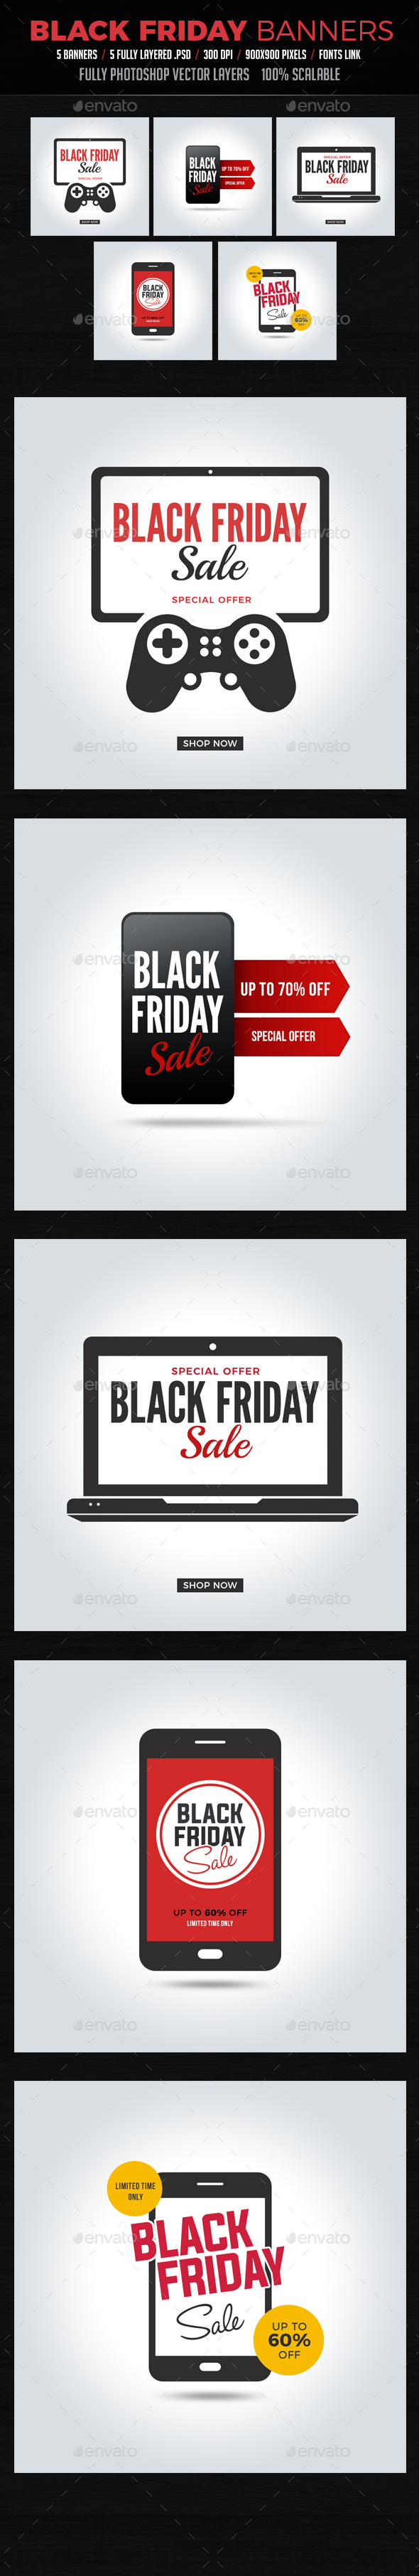 Black Friday Banners Instagram - Banners & Ads Web Elements